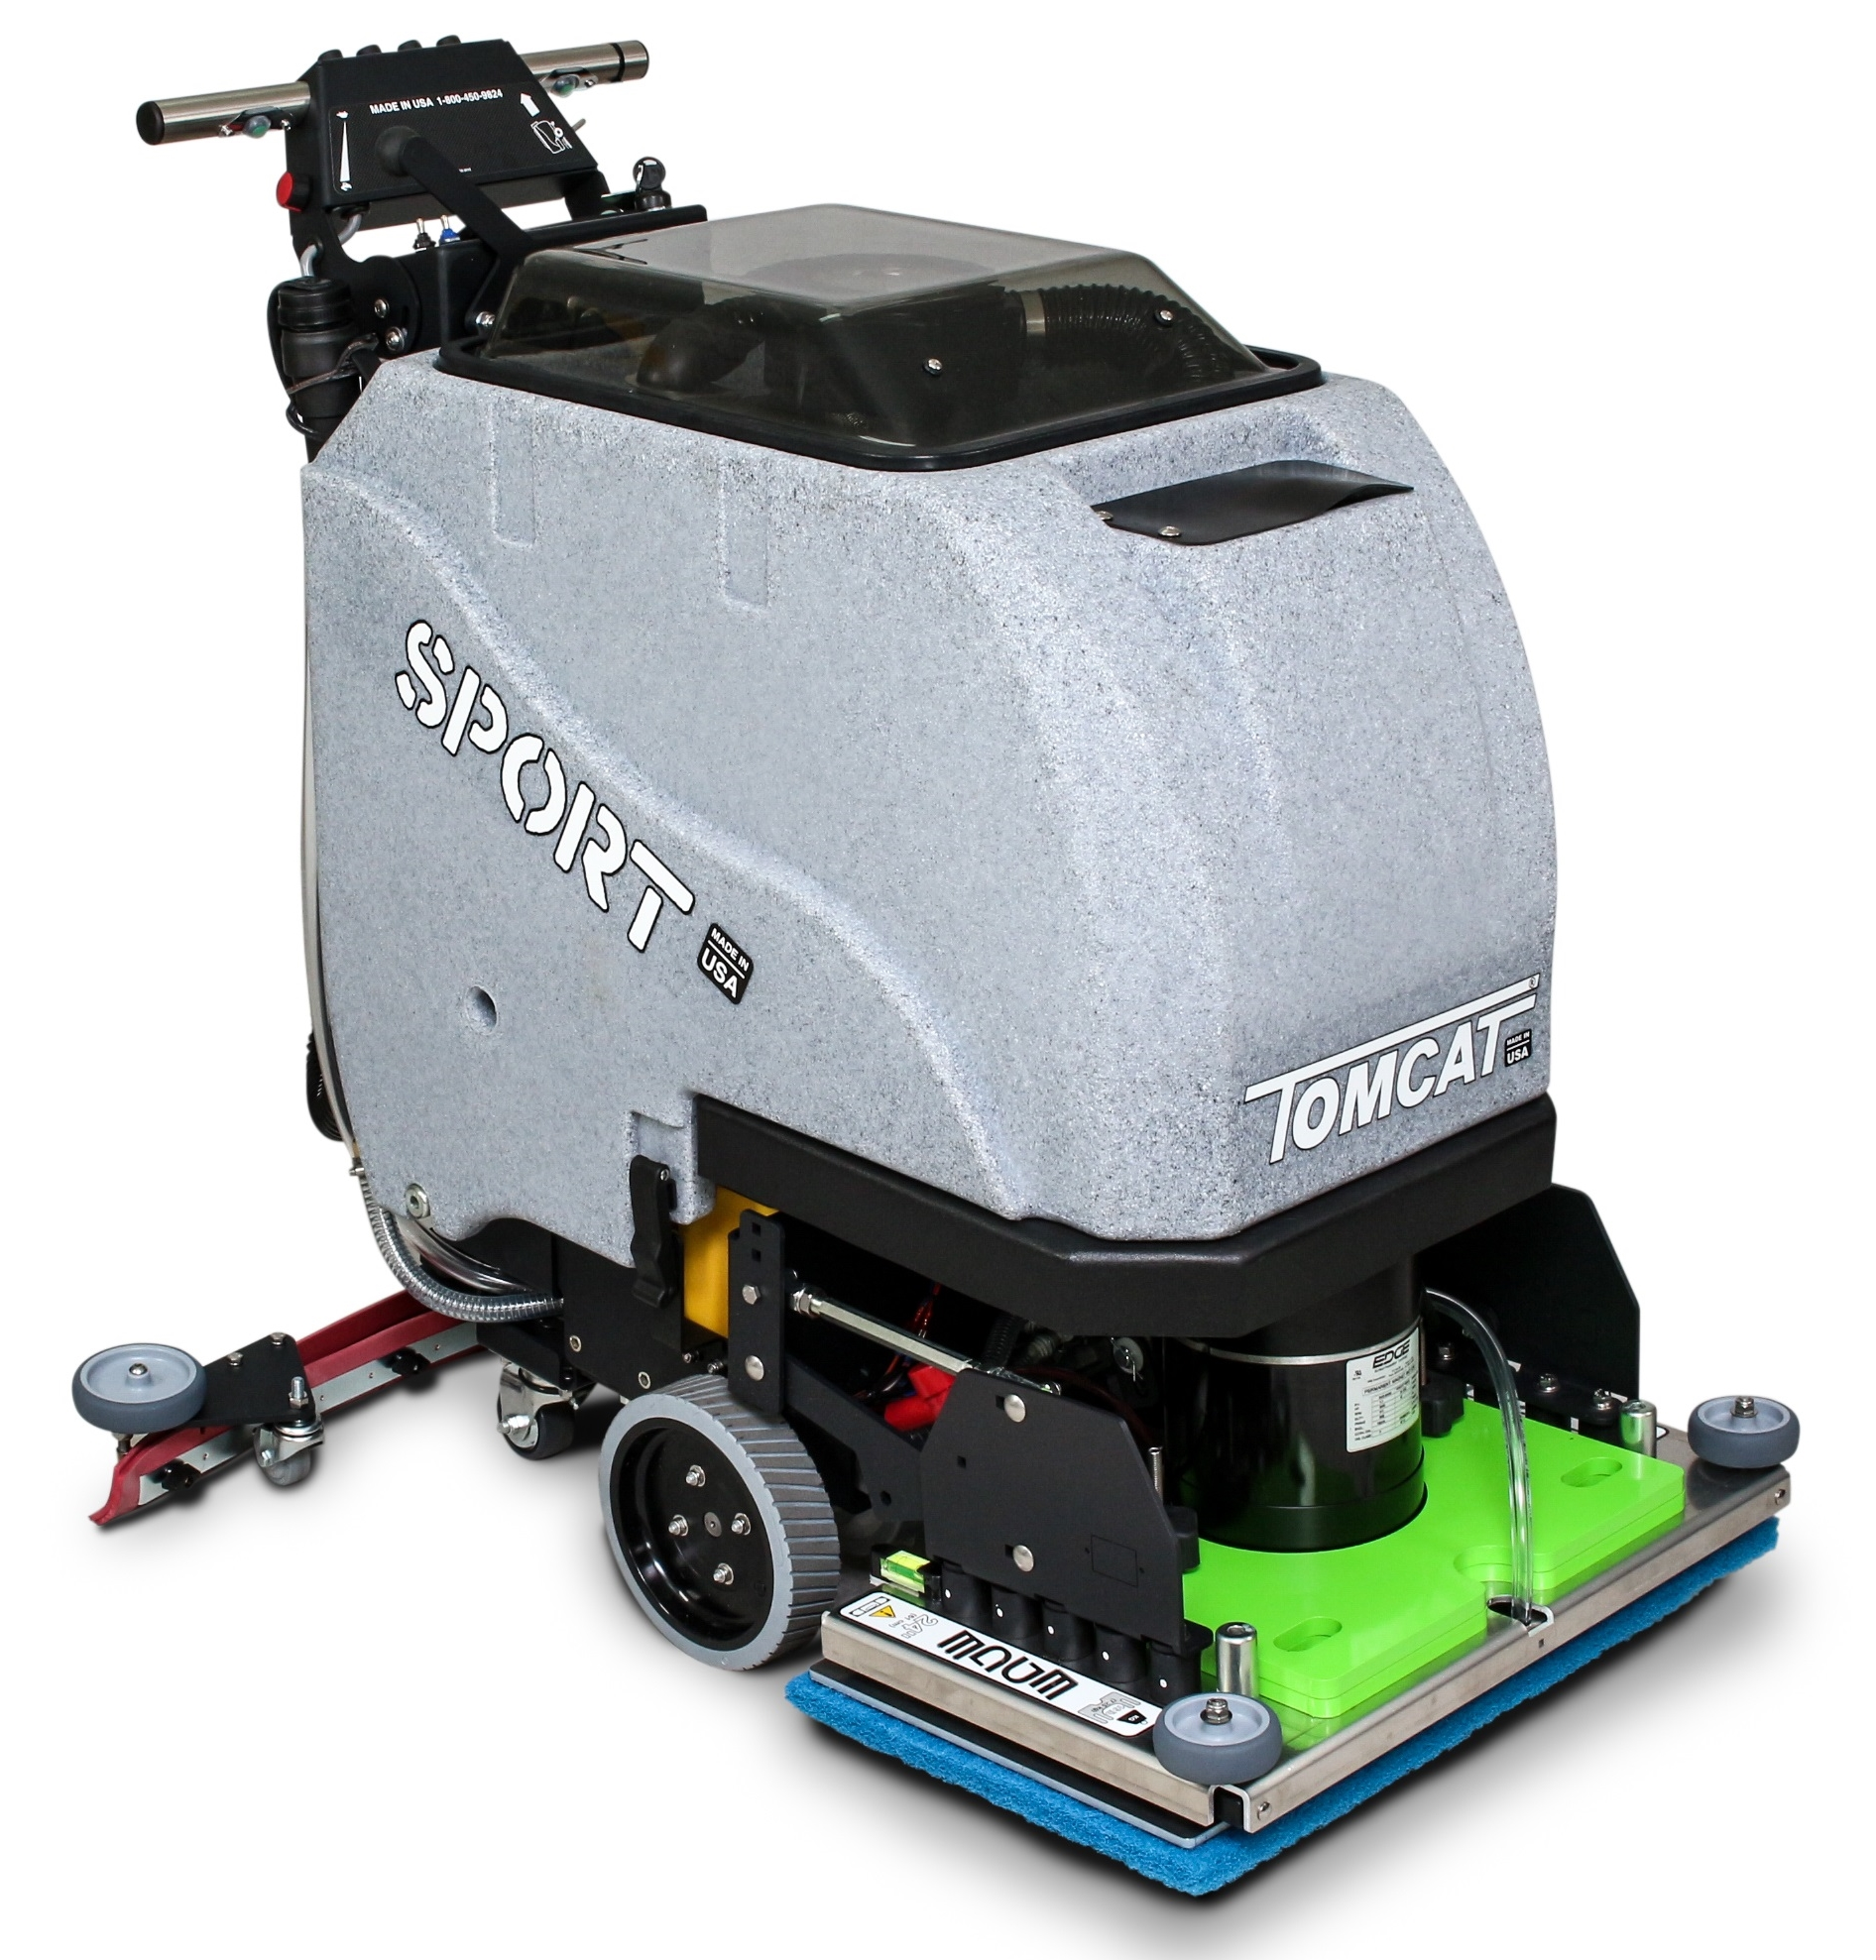 TomCat Sport Scrubber Drier with EDGE oscillating tecnology